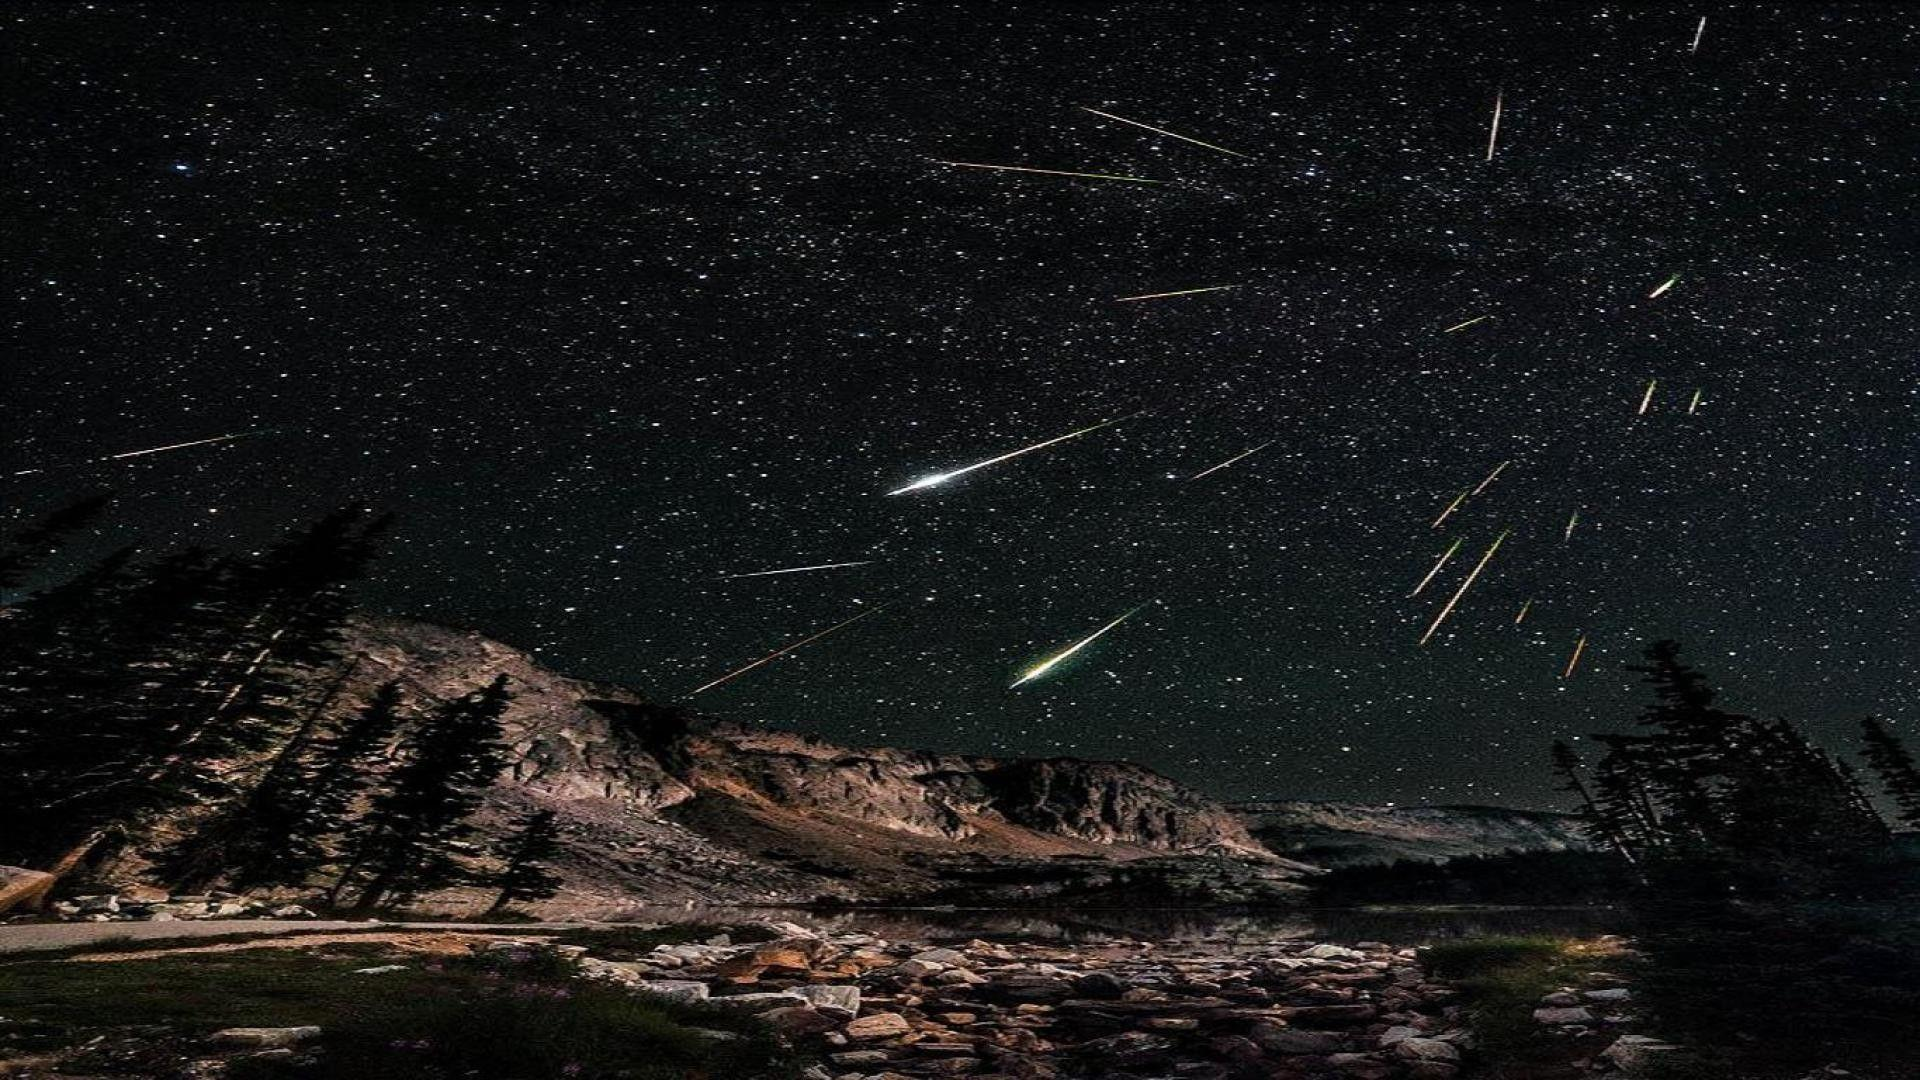 Meteor Shower Wallpapers - Top Free Meteor Shower Backgrounds ...